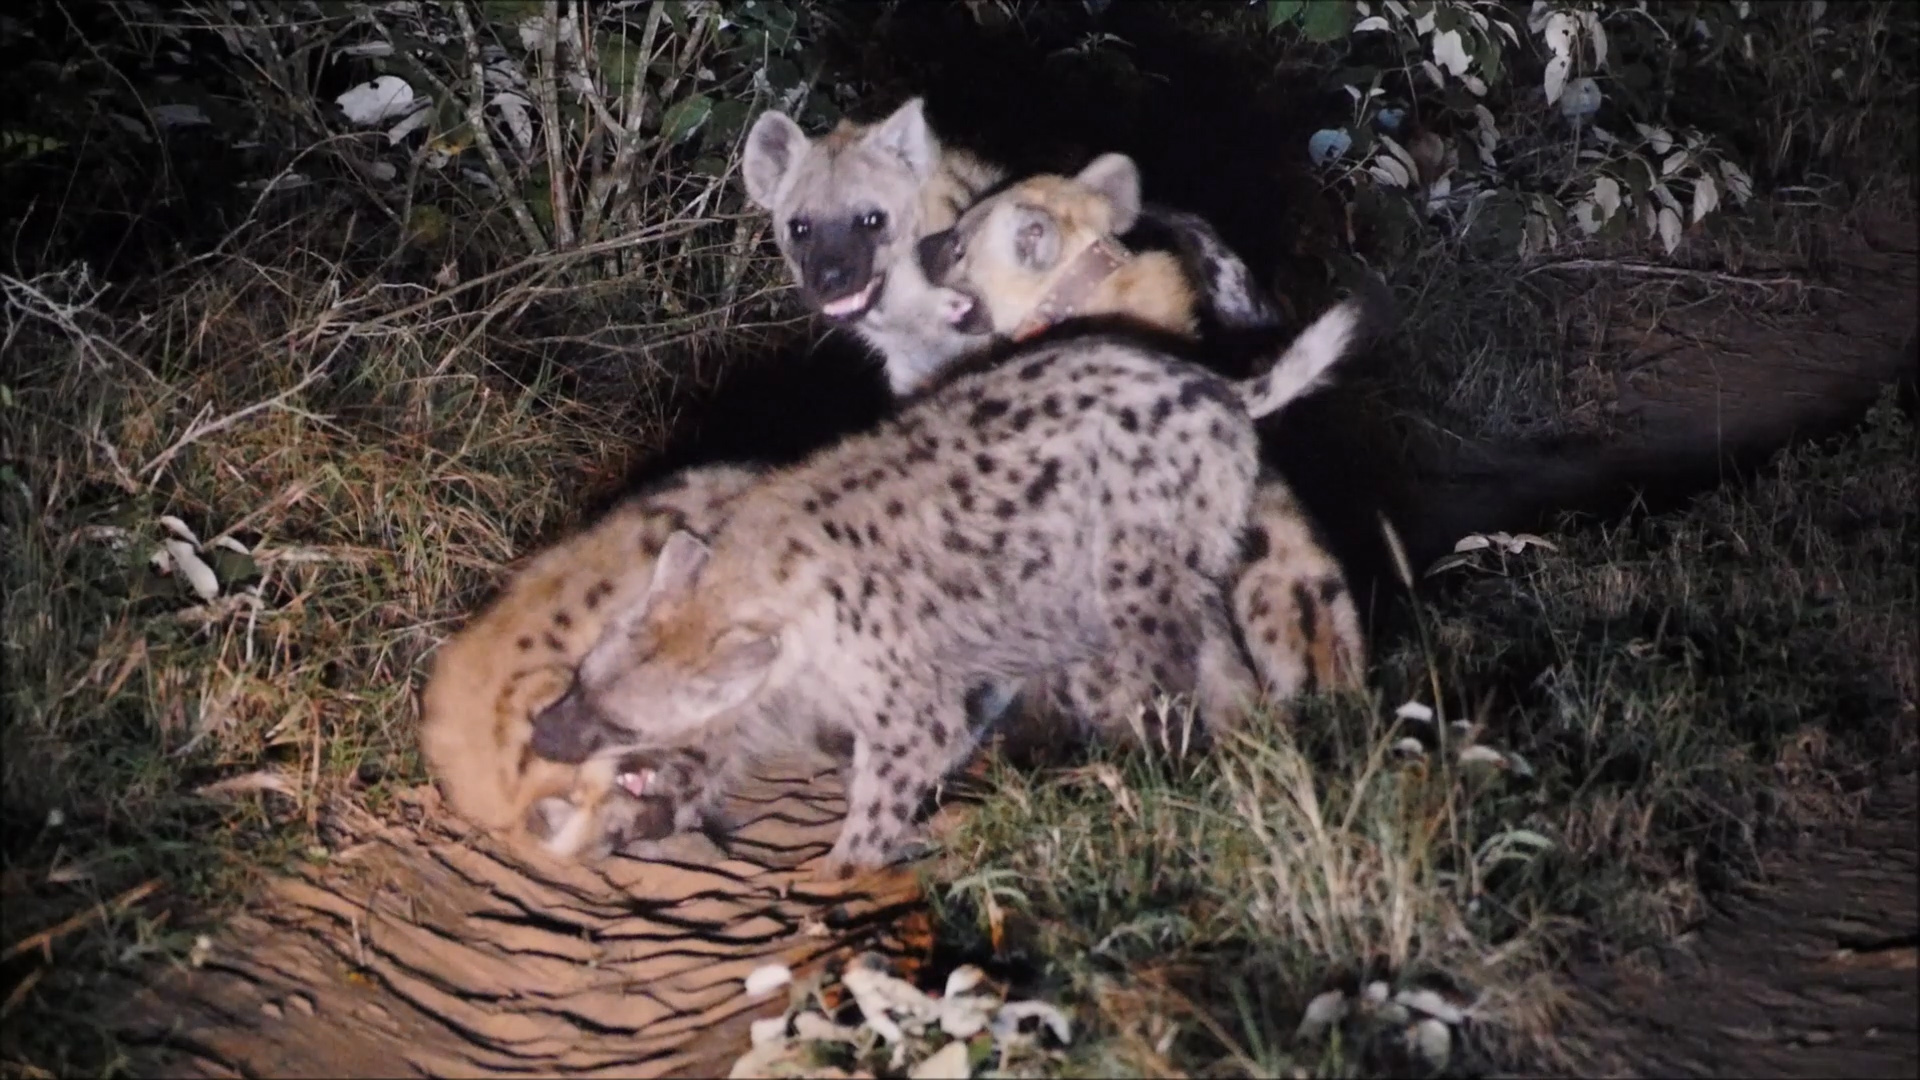 Male hyena #127 was the first to be collared. Here you see him playing and bonding with his clan, including a hyena pup!